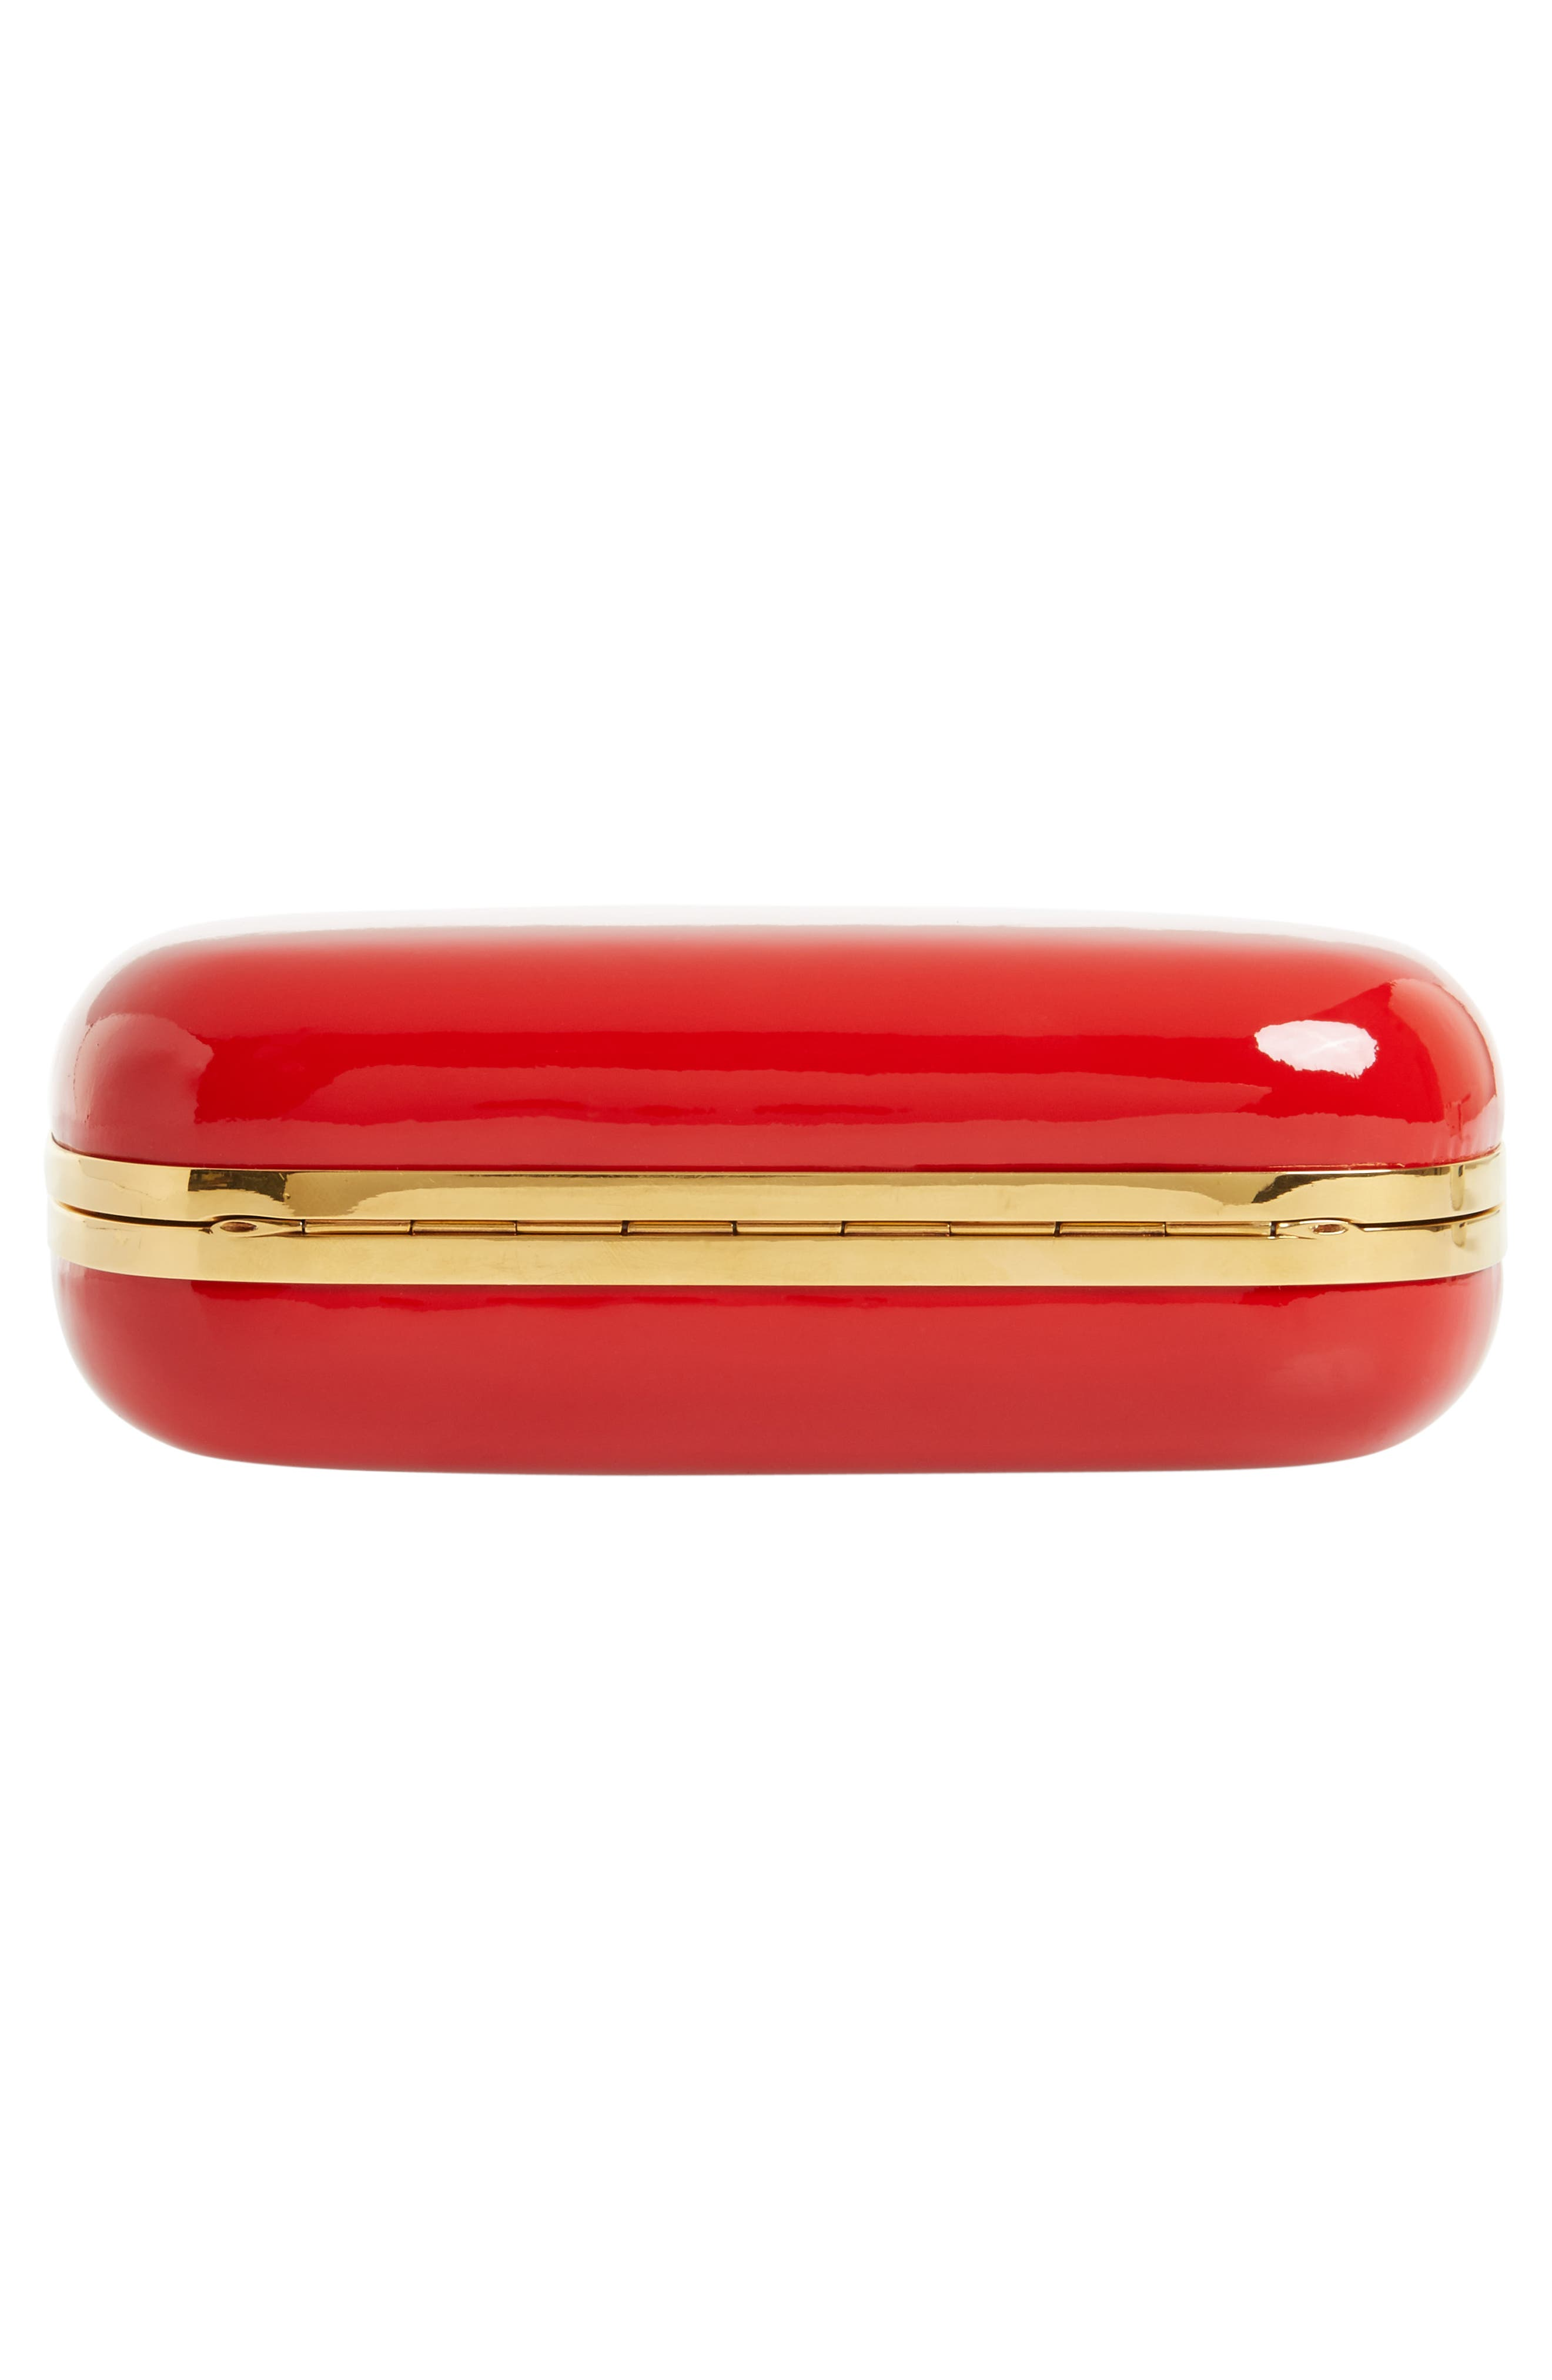 Knuckle Clasp Patent Leather Box Clutch,                             Alternate thumbnail 6, color,                             624